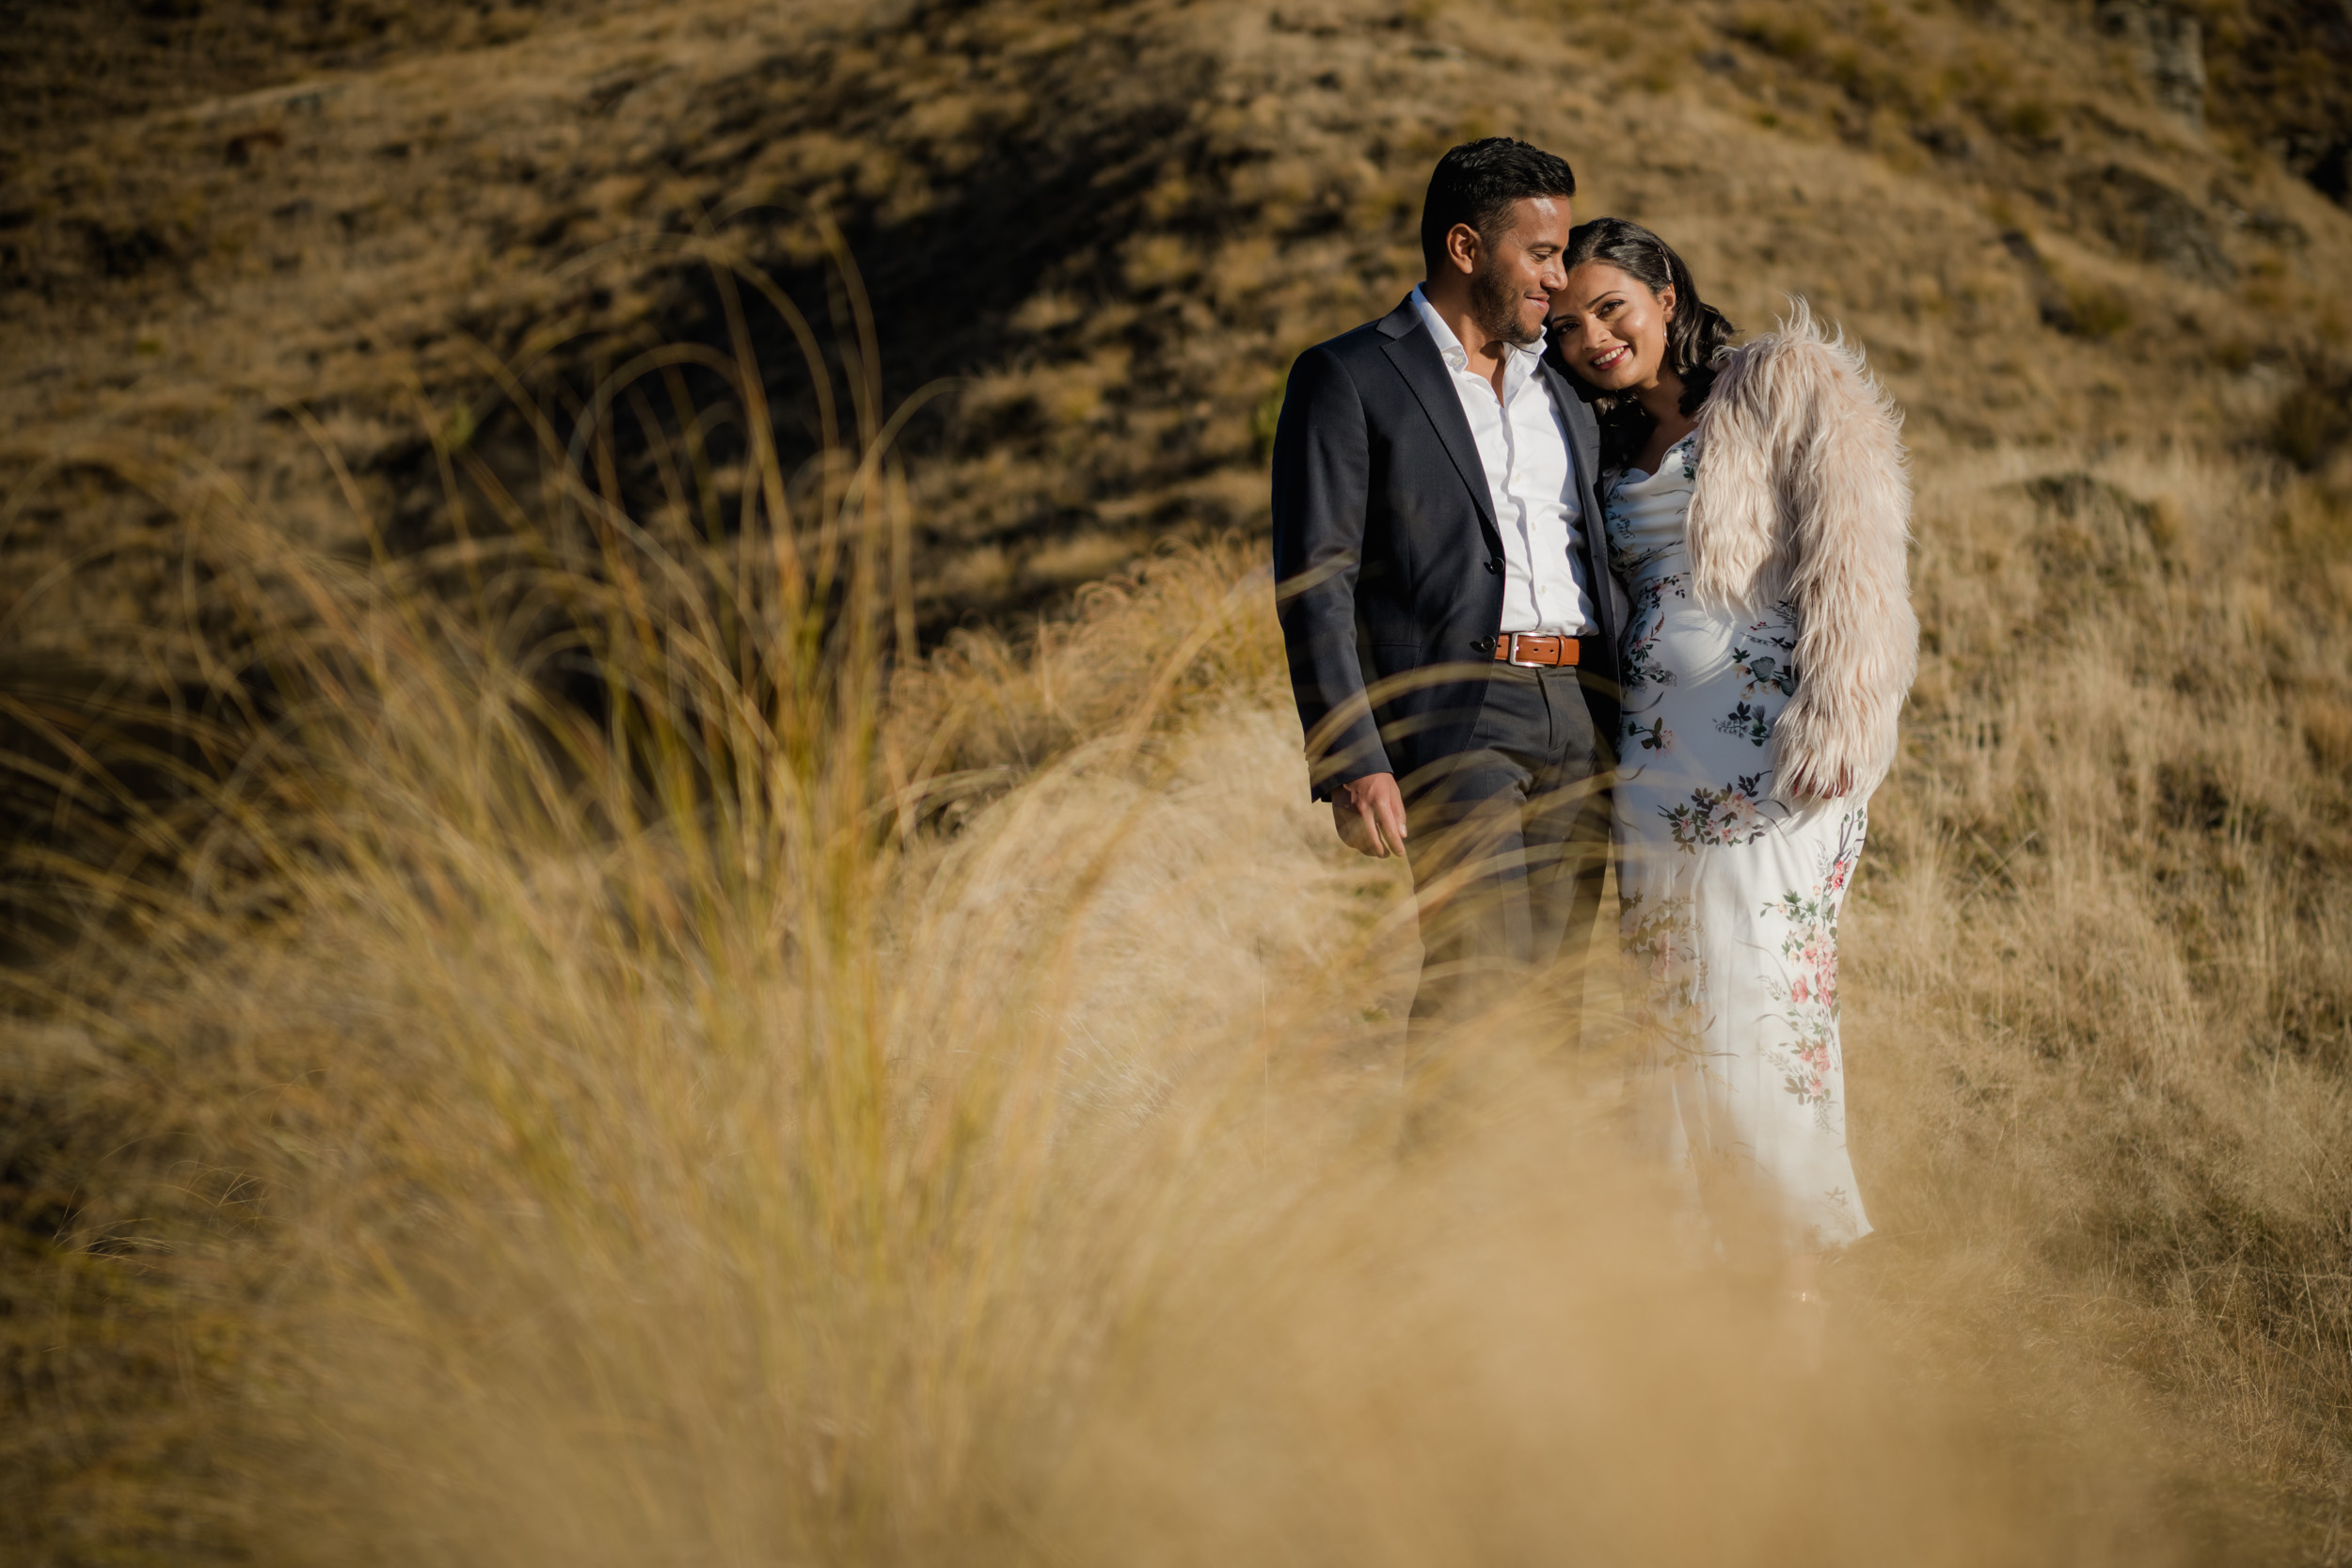 The happy couple - Professional Wedding, Engagement and Elopement Photography in Queenstown NZ